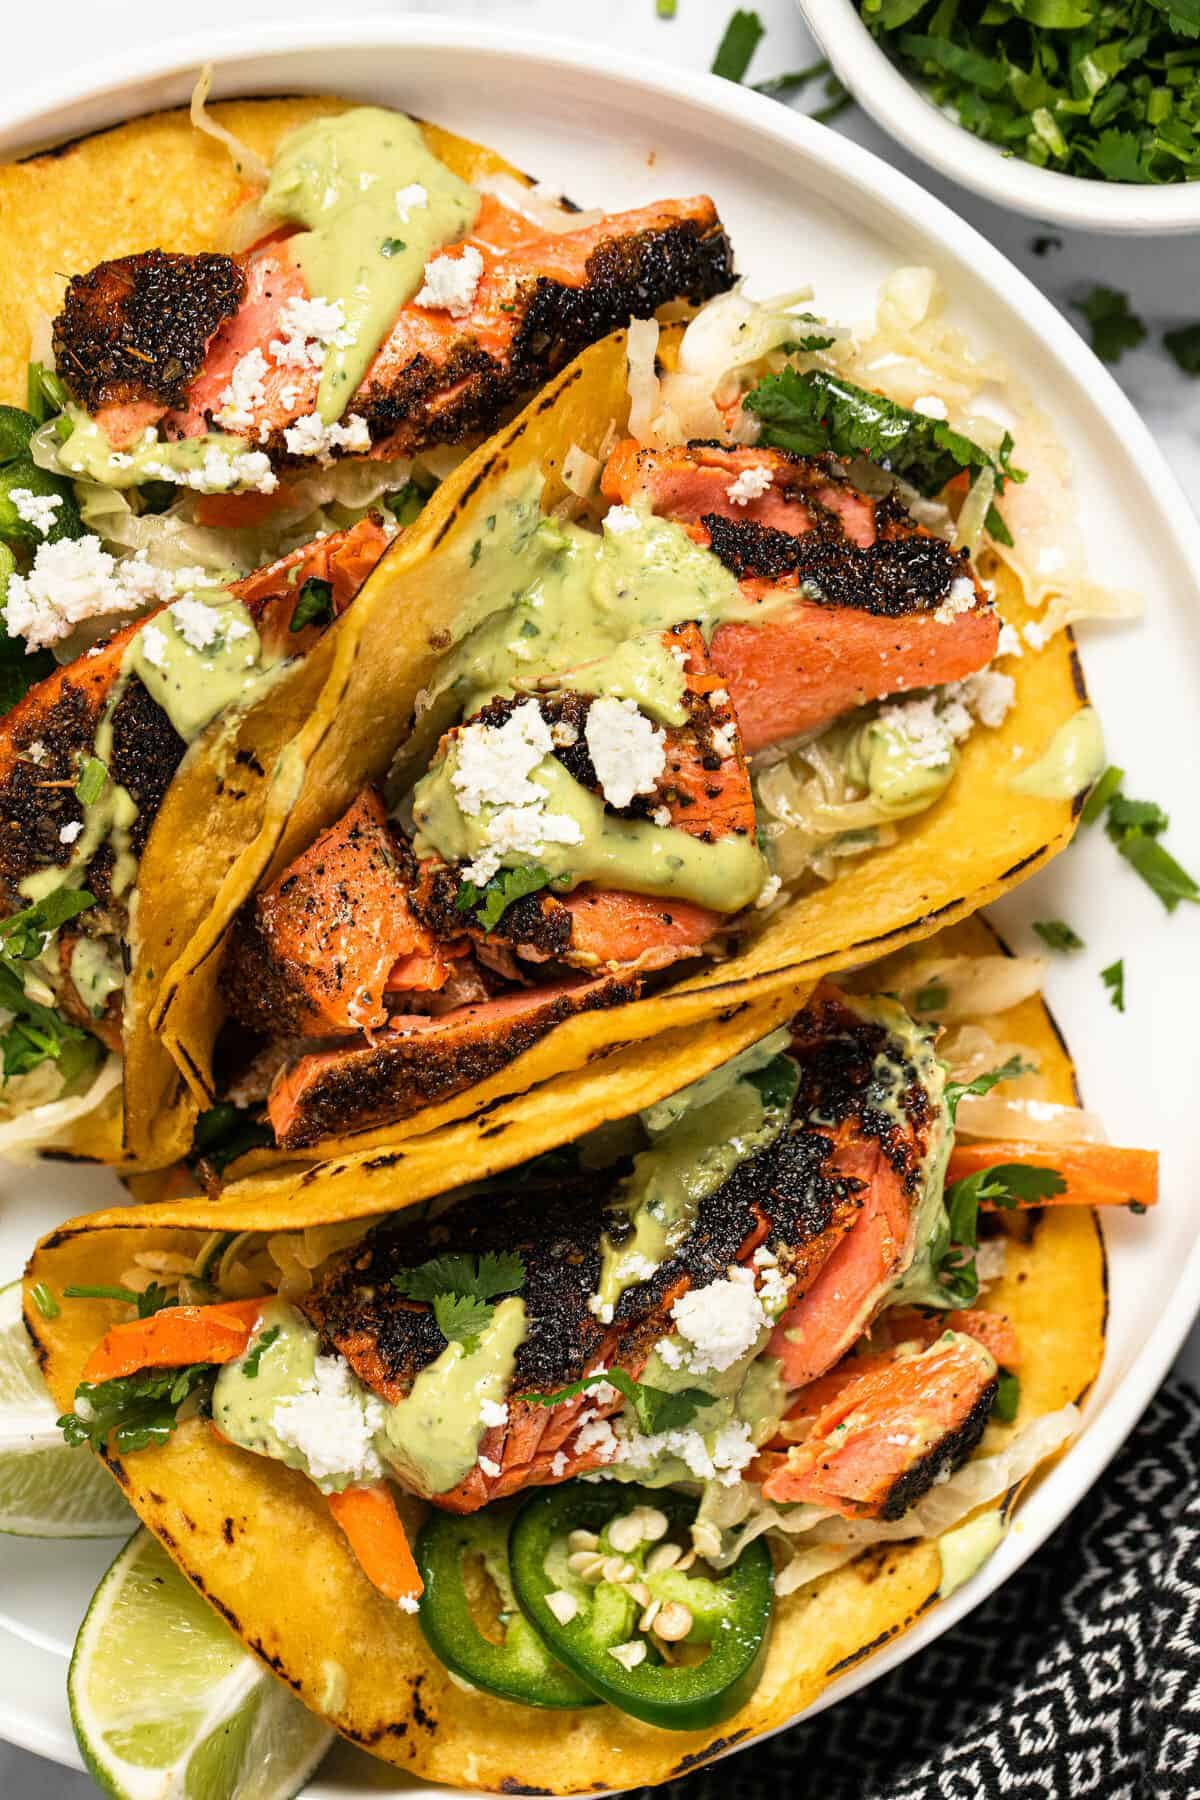 White plate with blackened salmon tacos garnished with cilantro